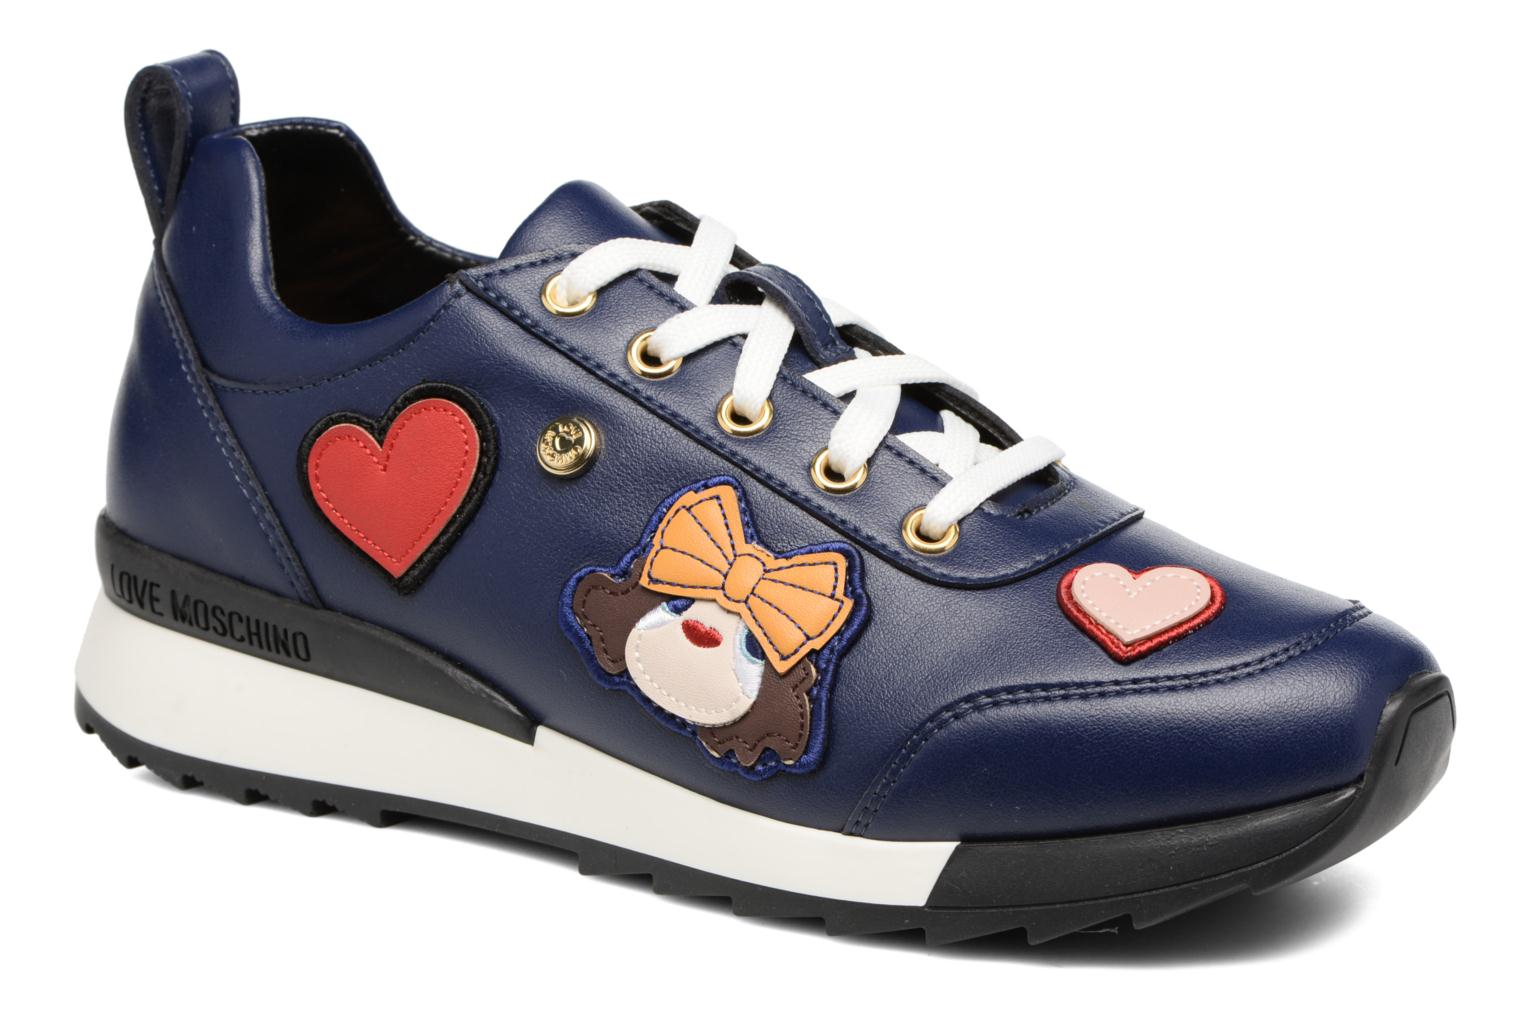 Charming Sneaker by Love MoschinoRebajas - 30%